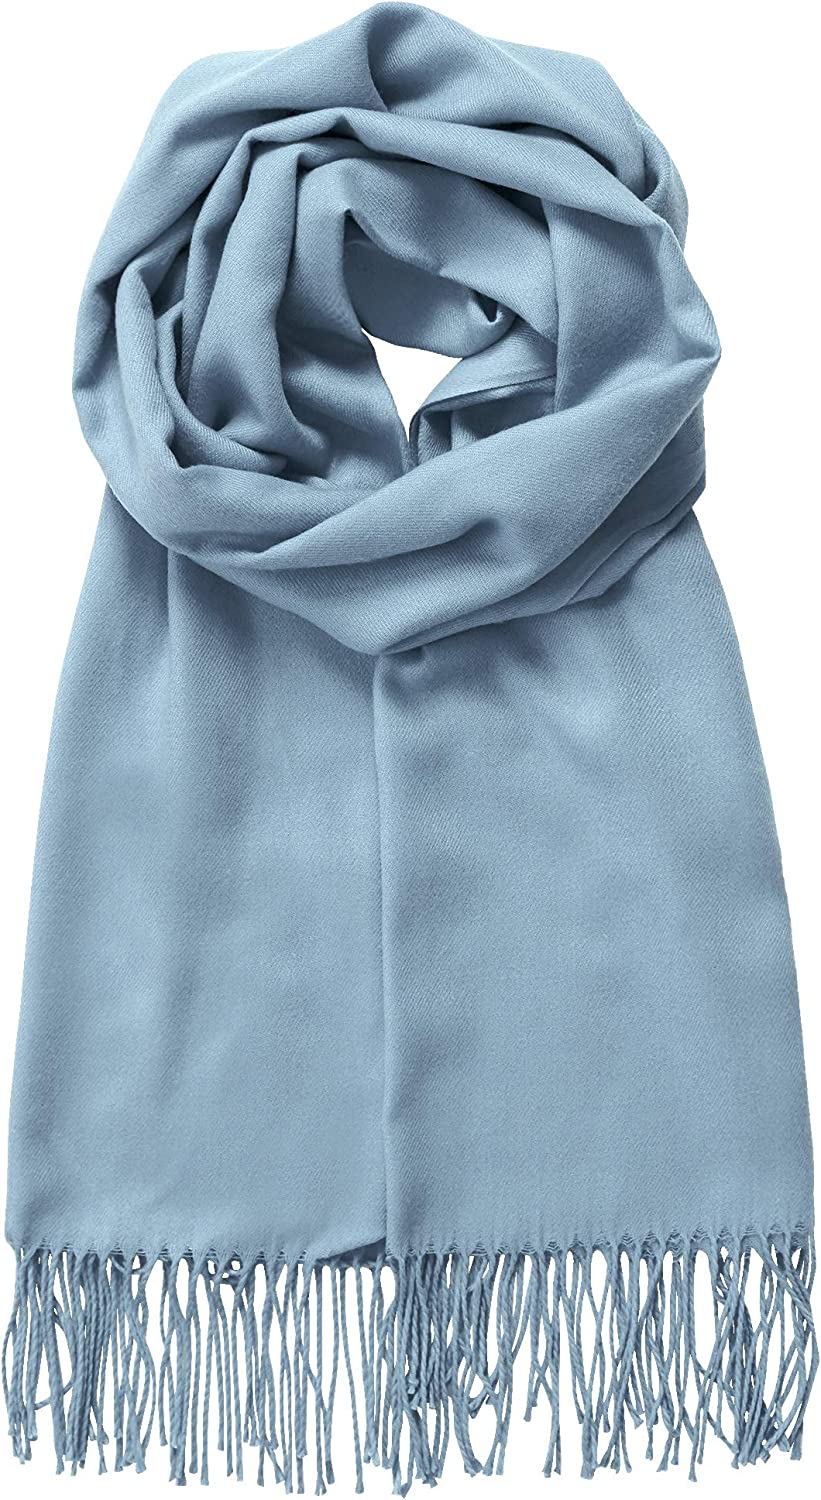 Made by Johnny Unisex sold out Large Soft Silky Now free shipping Cashmere Lightweight Real